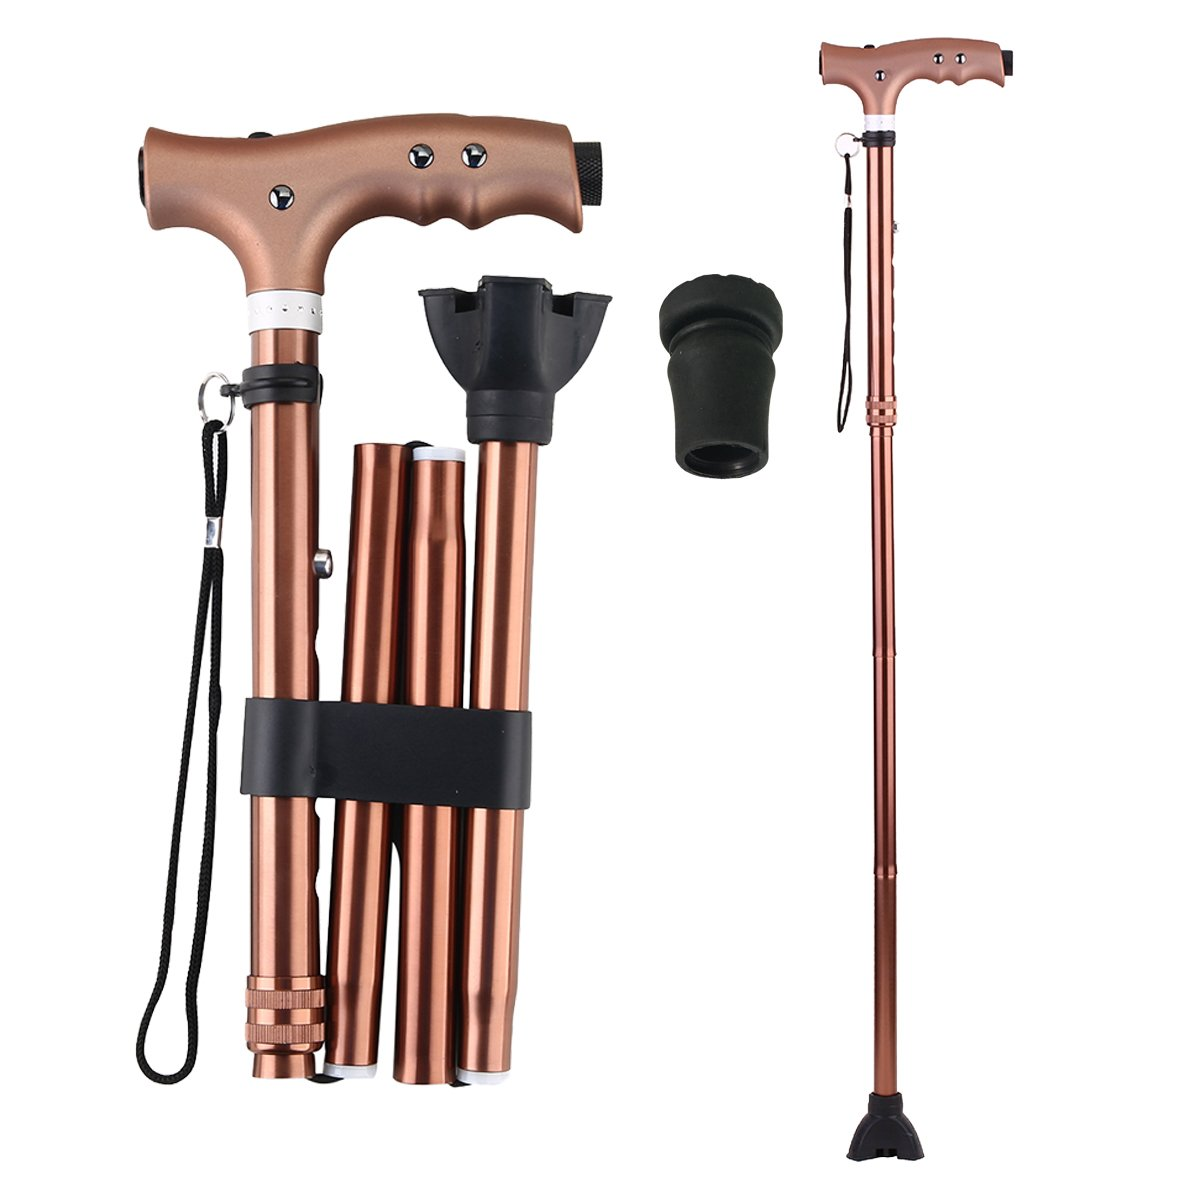 Folding Walking Cane with LED Flashlight, Ranger5 Anodized Aluminum Collapsible Adjustable Walking Stick with 1 Replacement Cane Tip